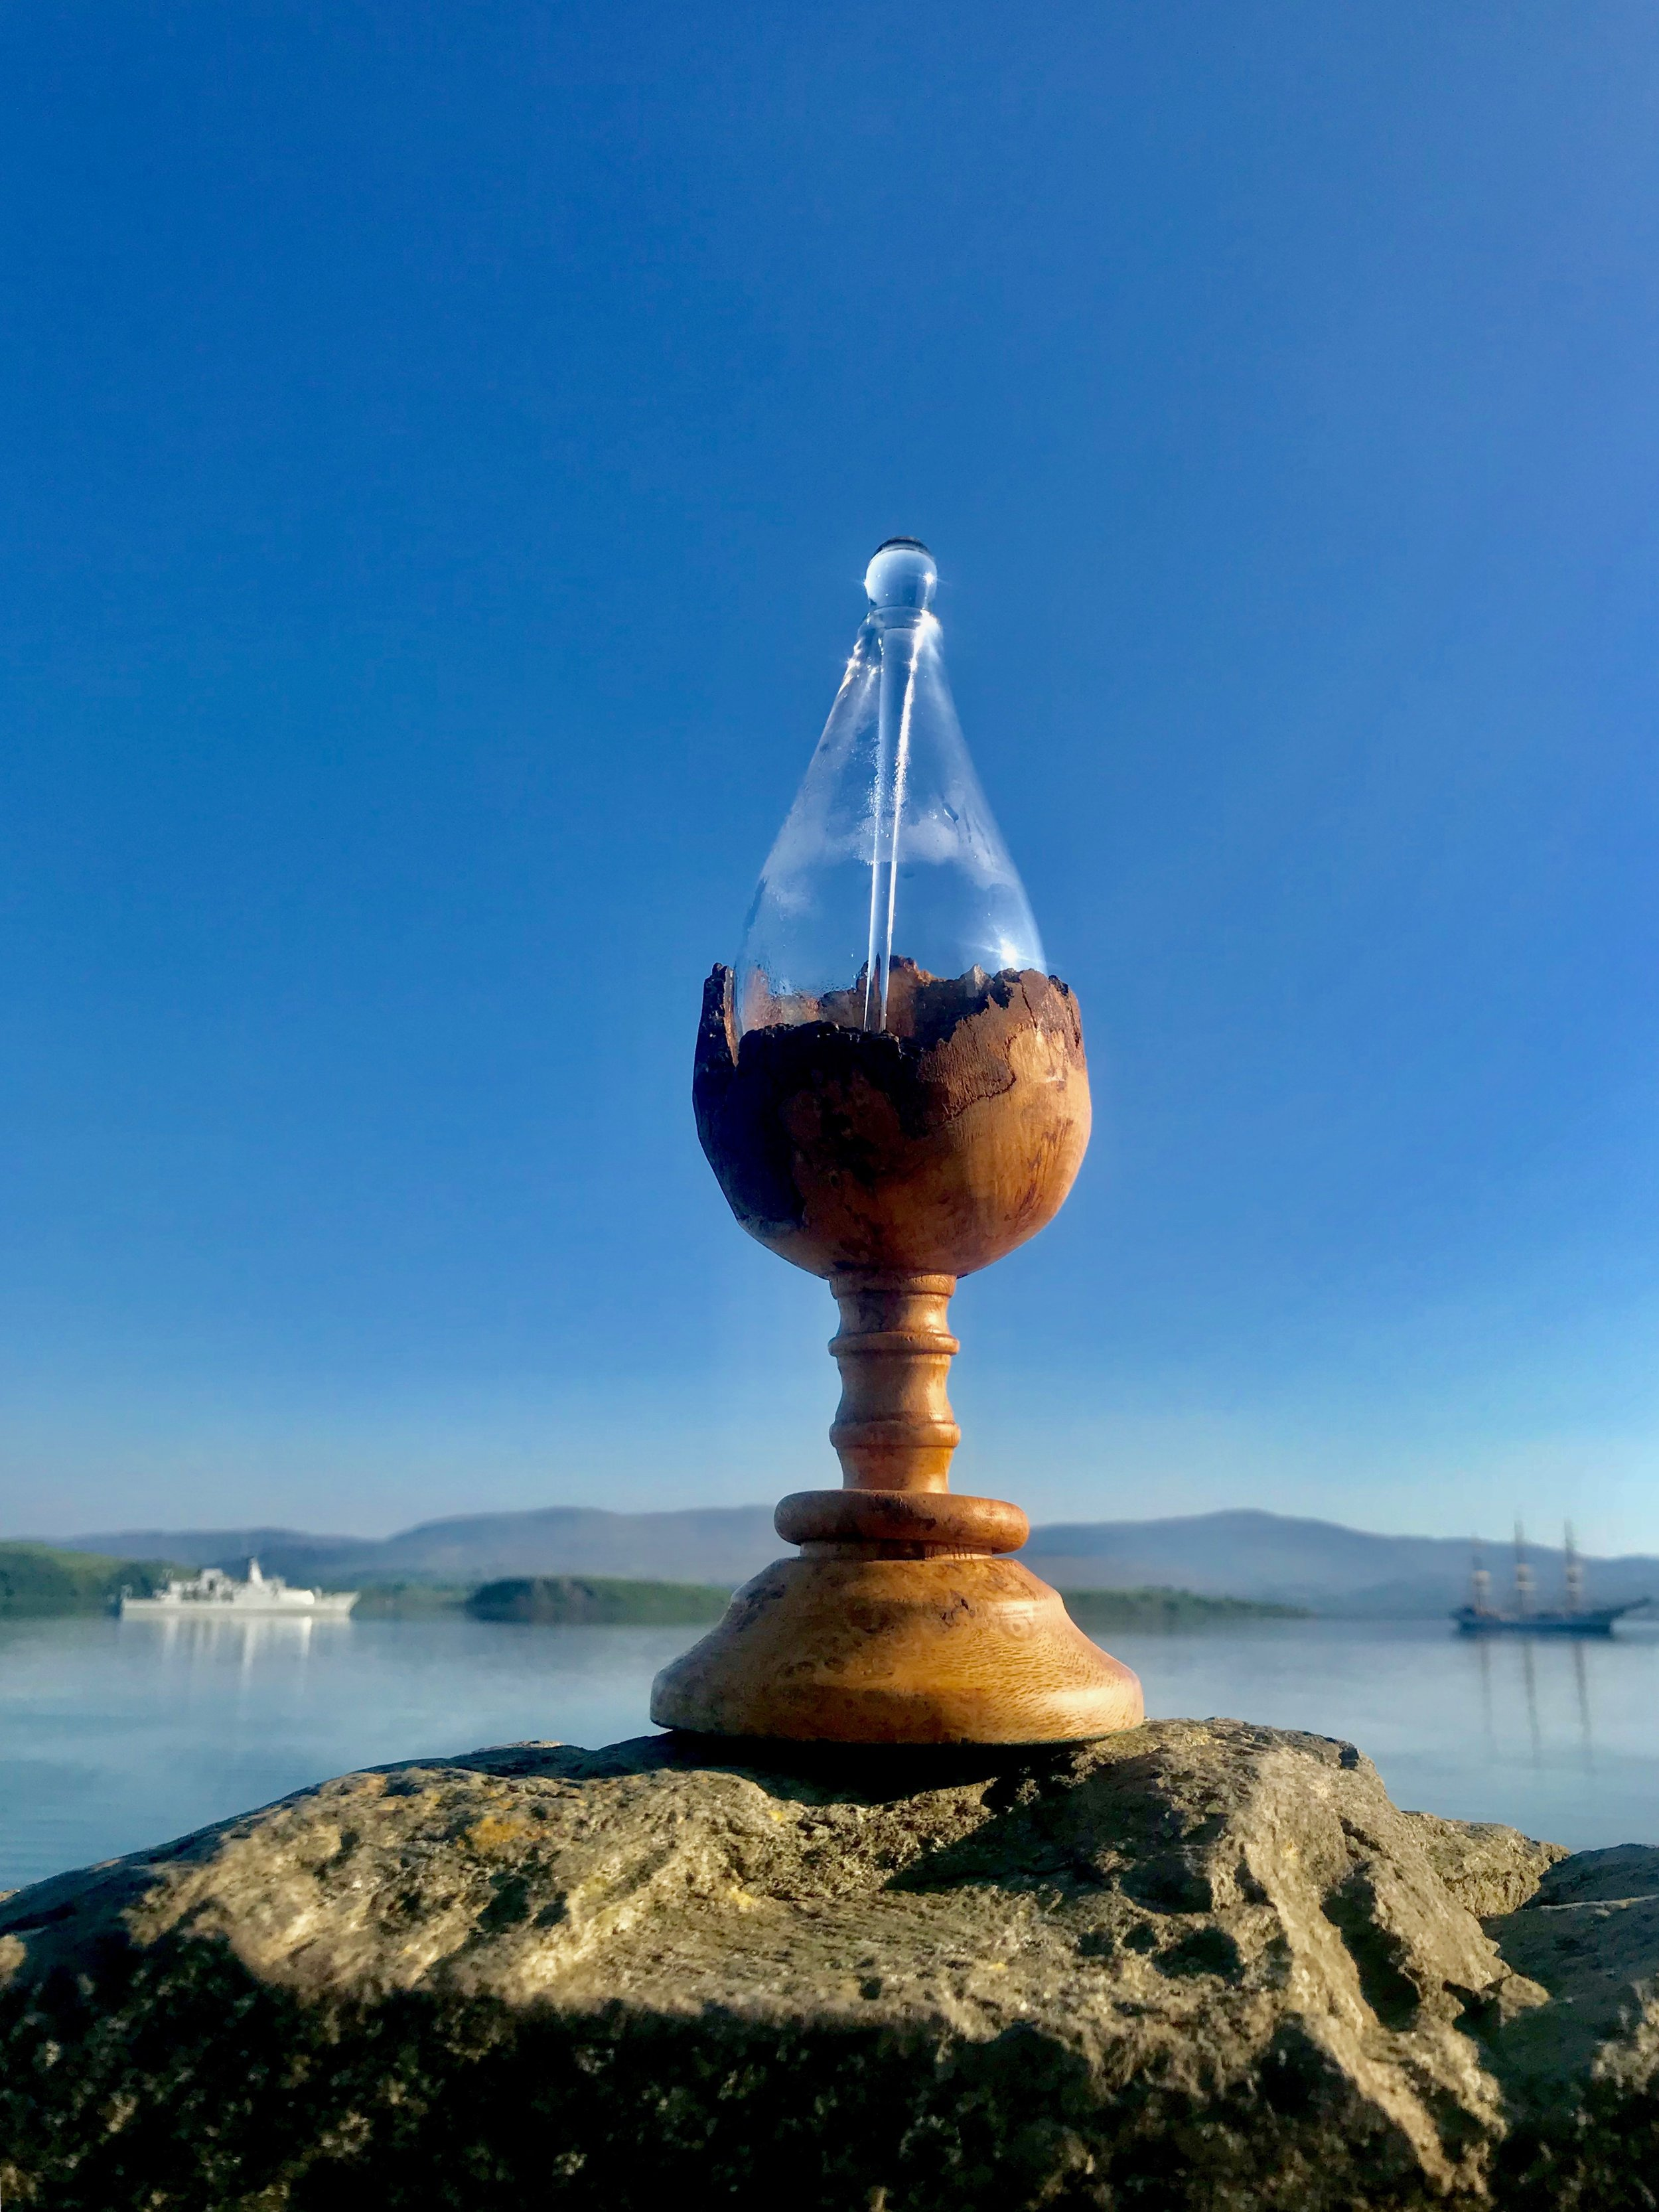 This is a handcrafted Irish oak goblet with a captive ring. Sitting snugly in the hand carved goblet is a custom made glass drop-shaped form designed to carry the drop on its journey.